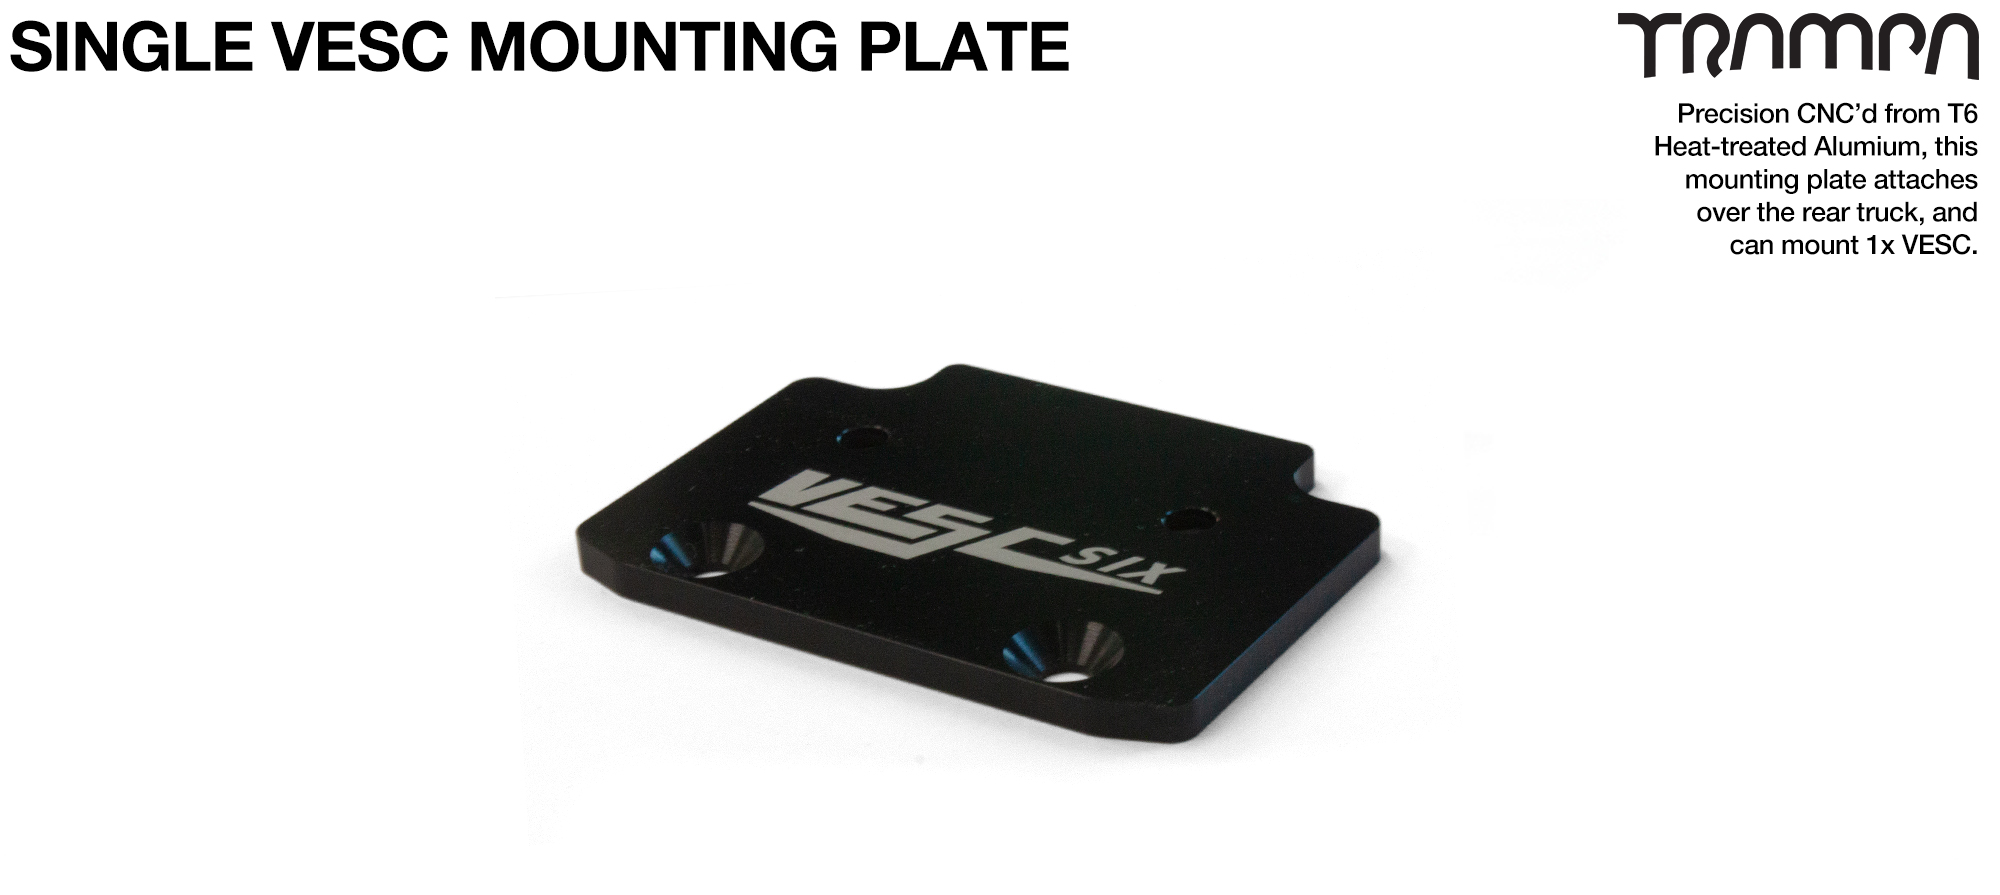 Yes please supply me with 4x Single ALUMINIUM VESC mounting plate (+£35)